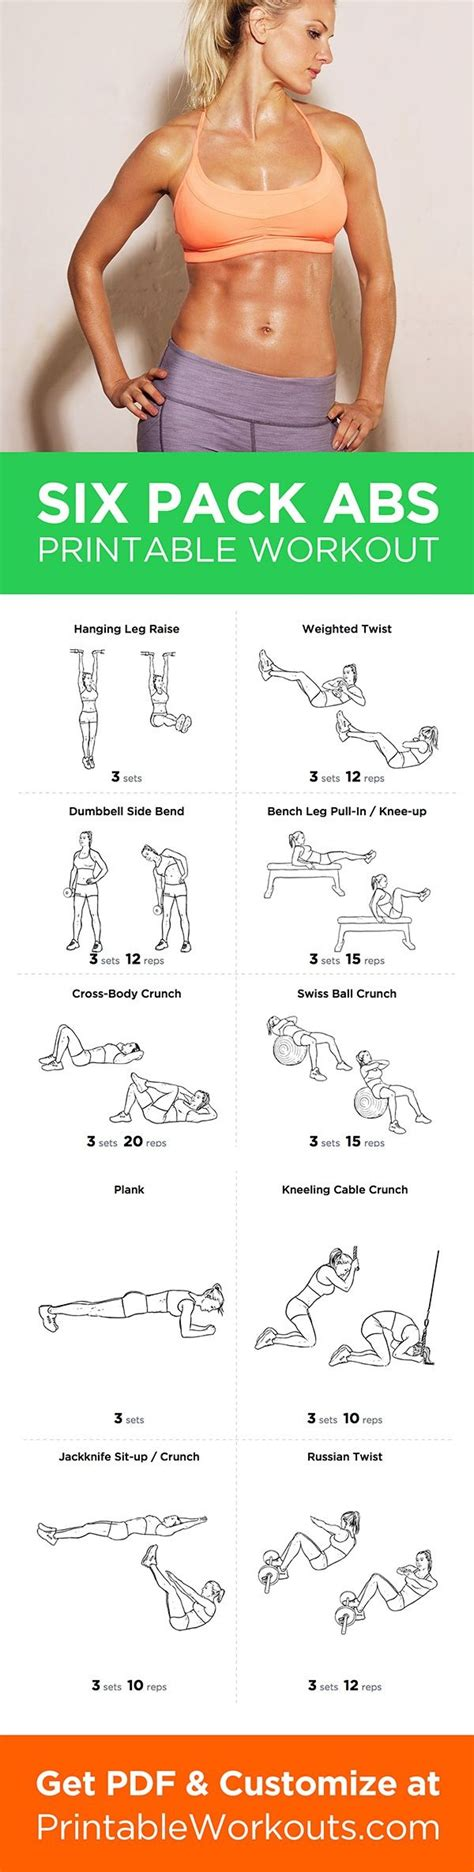 printable workout  customize  print  pack abs